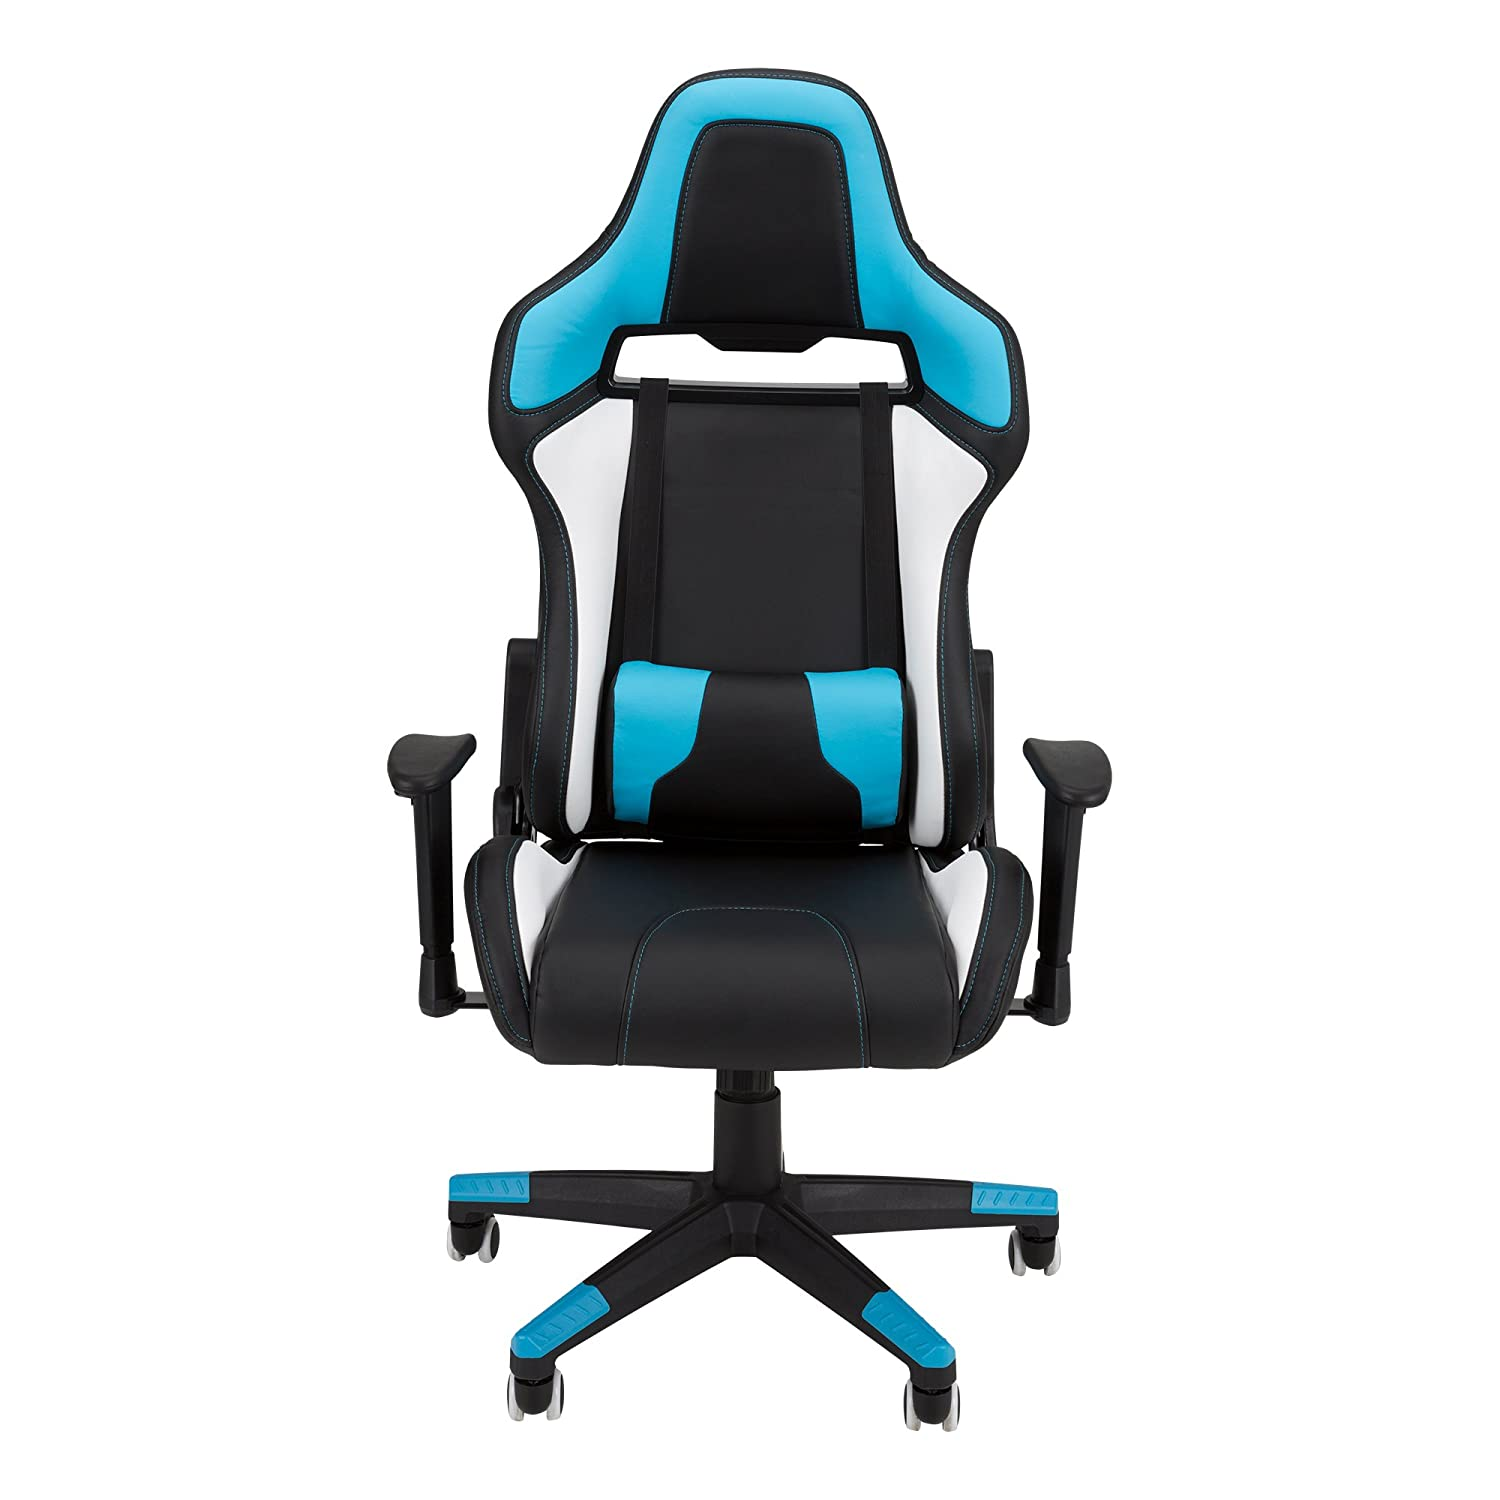 Skylab Performance Seating envejecido aij1004 de So Commander - Racing de Style Gaming Chair by F.C, Blue/White/Black: Amazon.es: Industria, ...